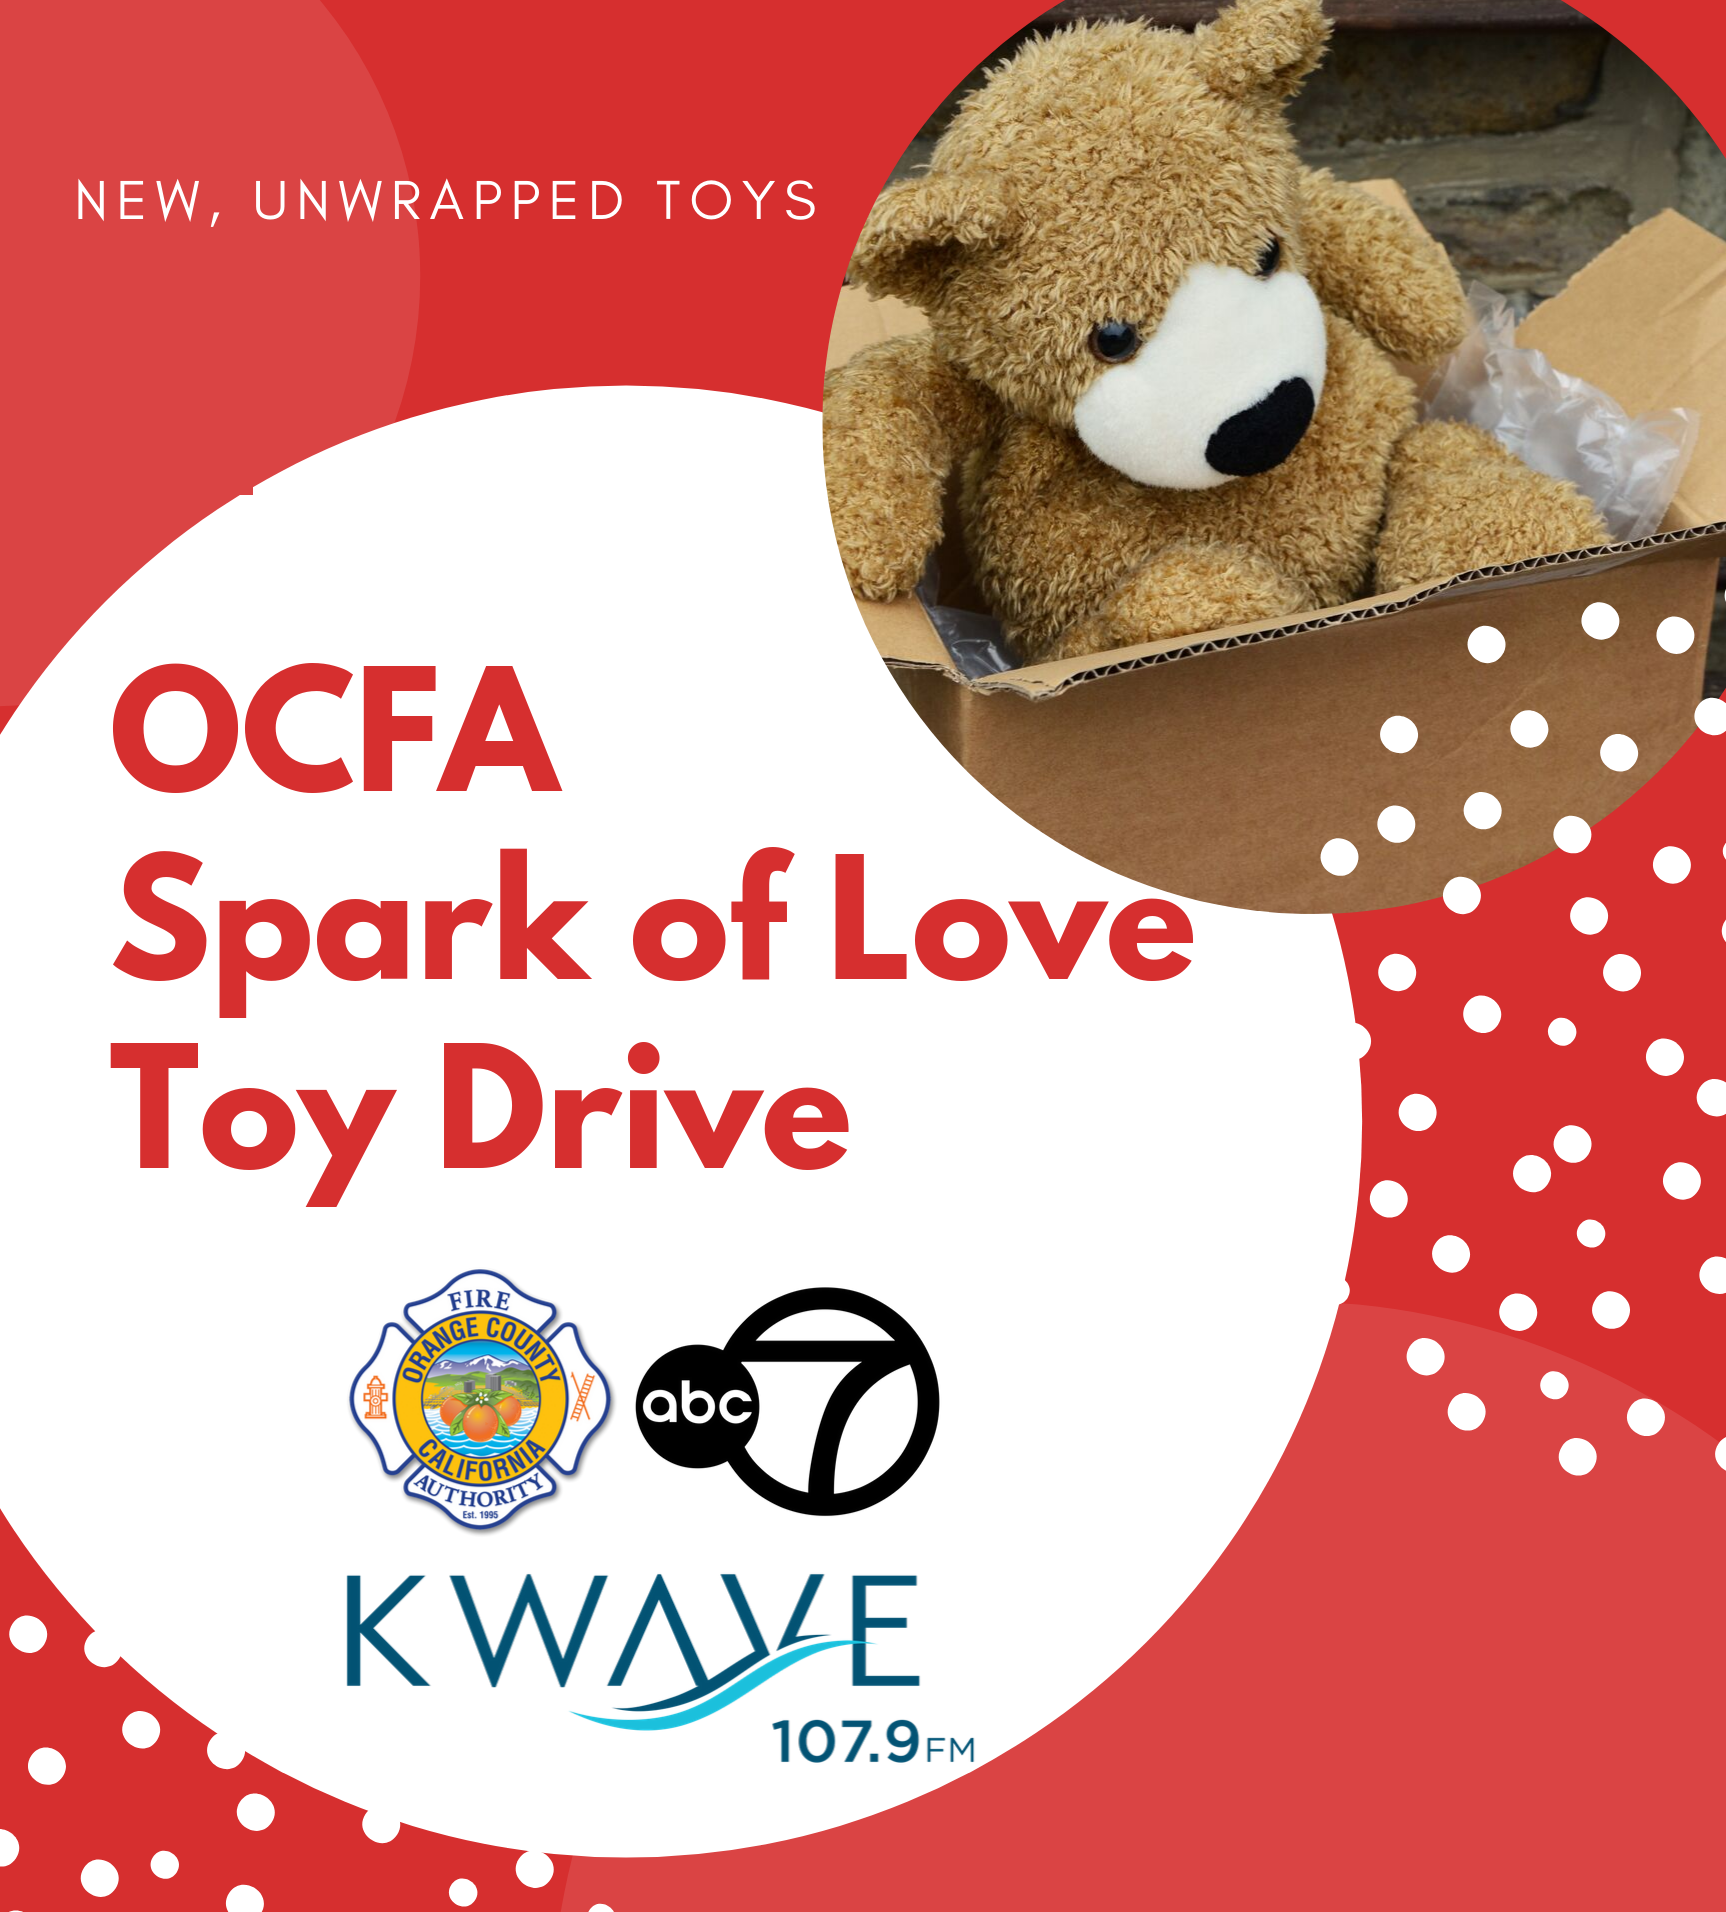 OCFA Holiday Toy Drive Poster2 v2